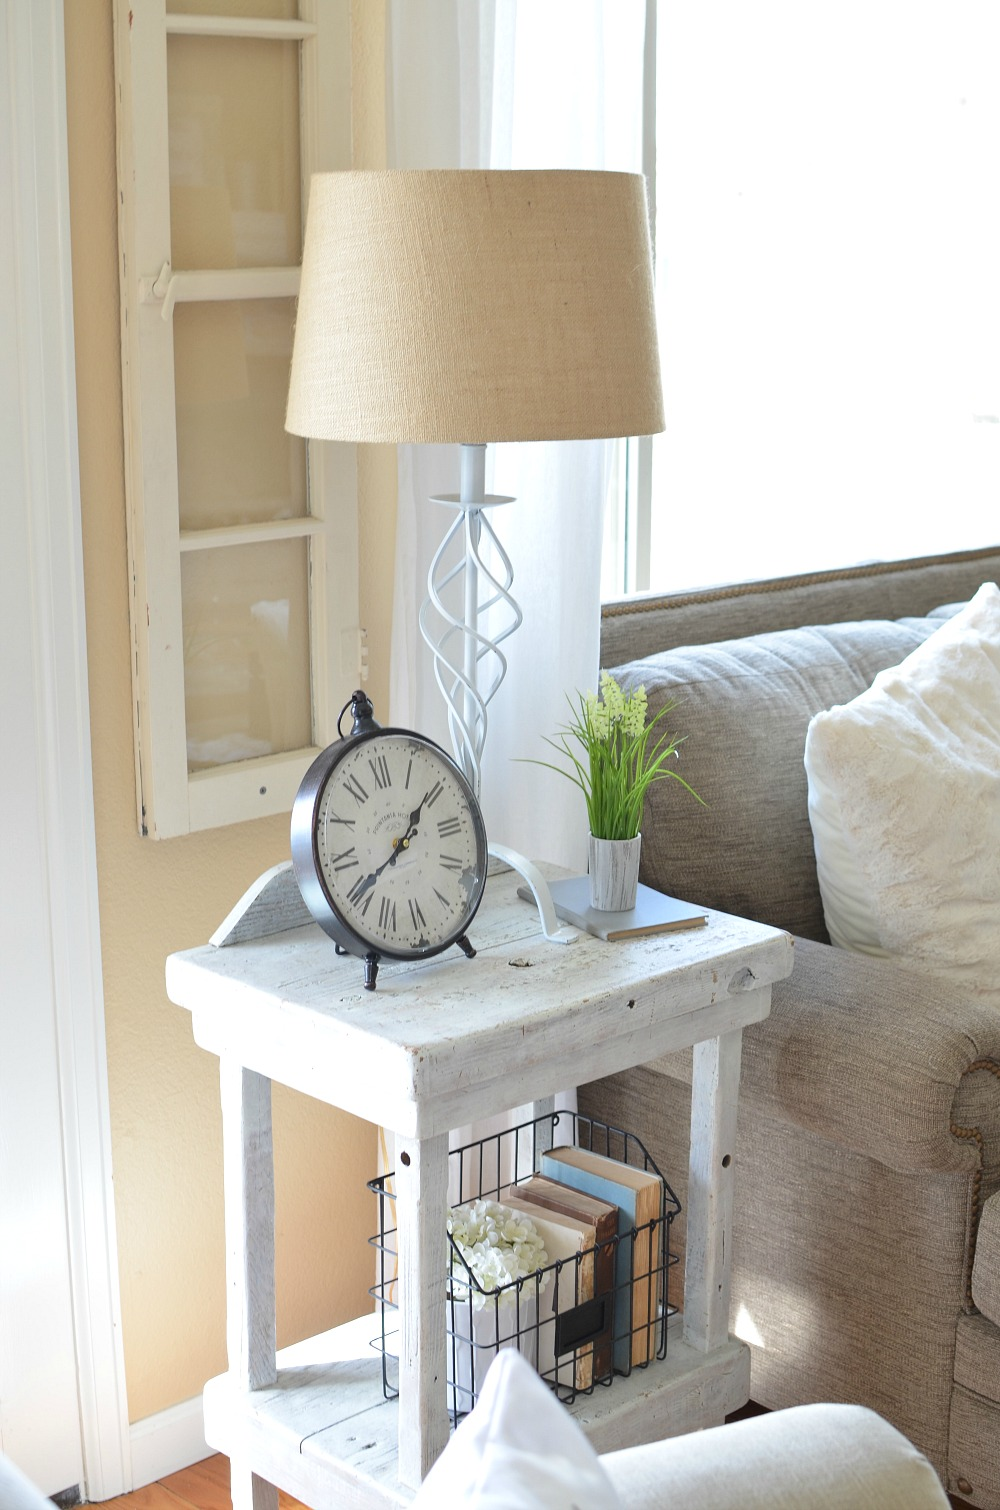 Refreshed modern farmhouse living room little vintage nest for I ve been seeing angels in my living room